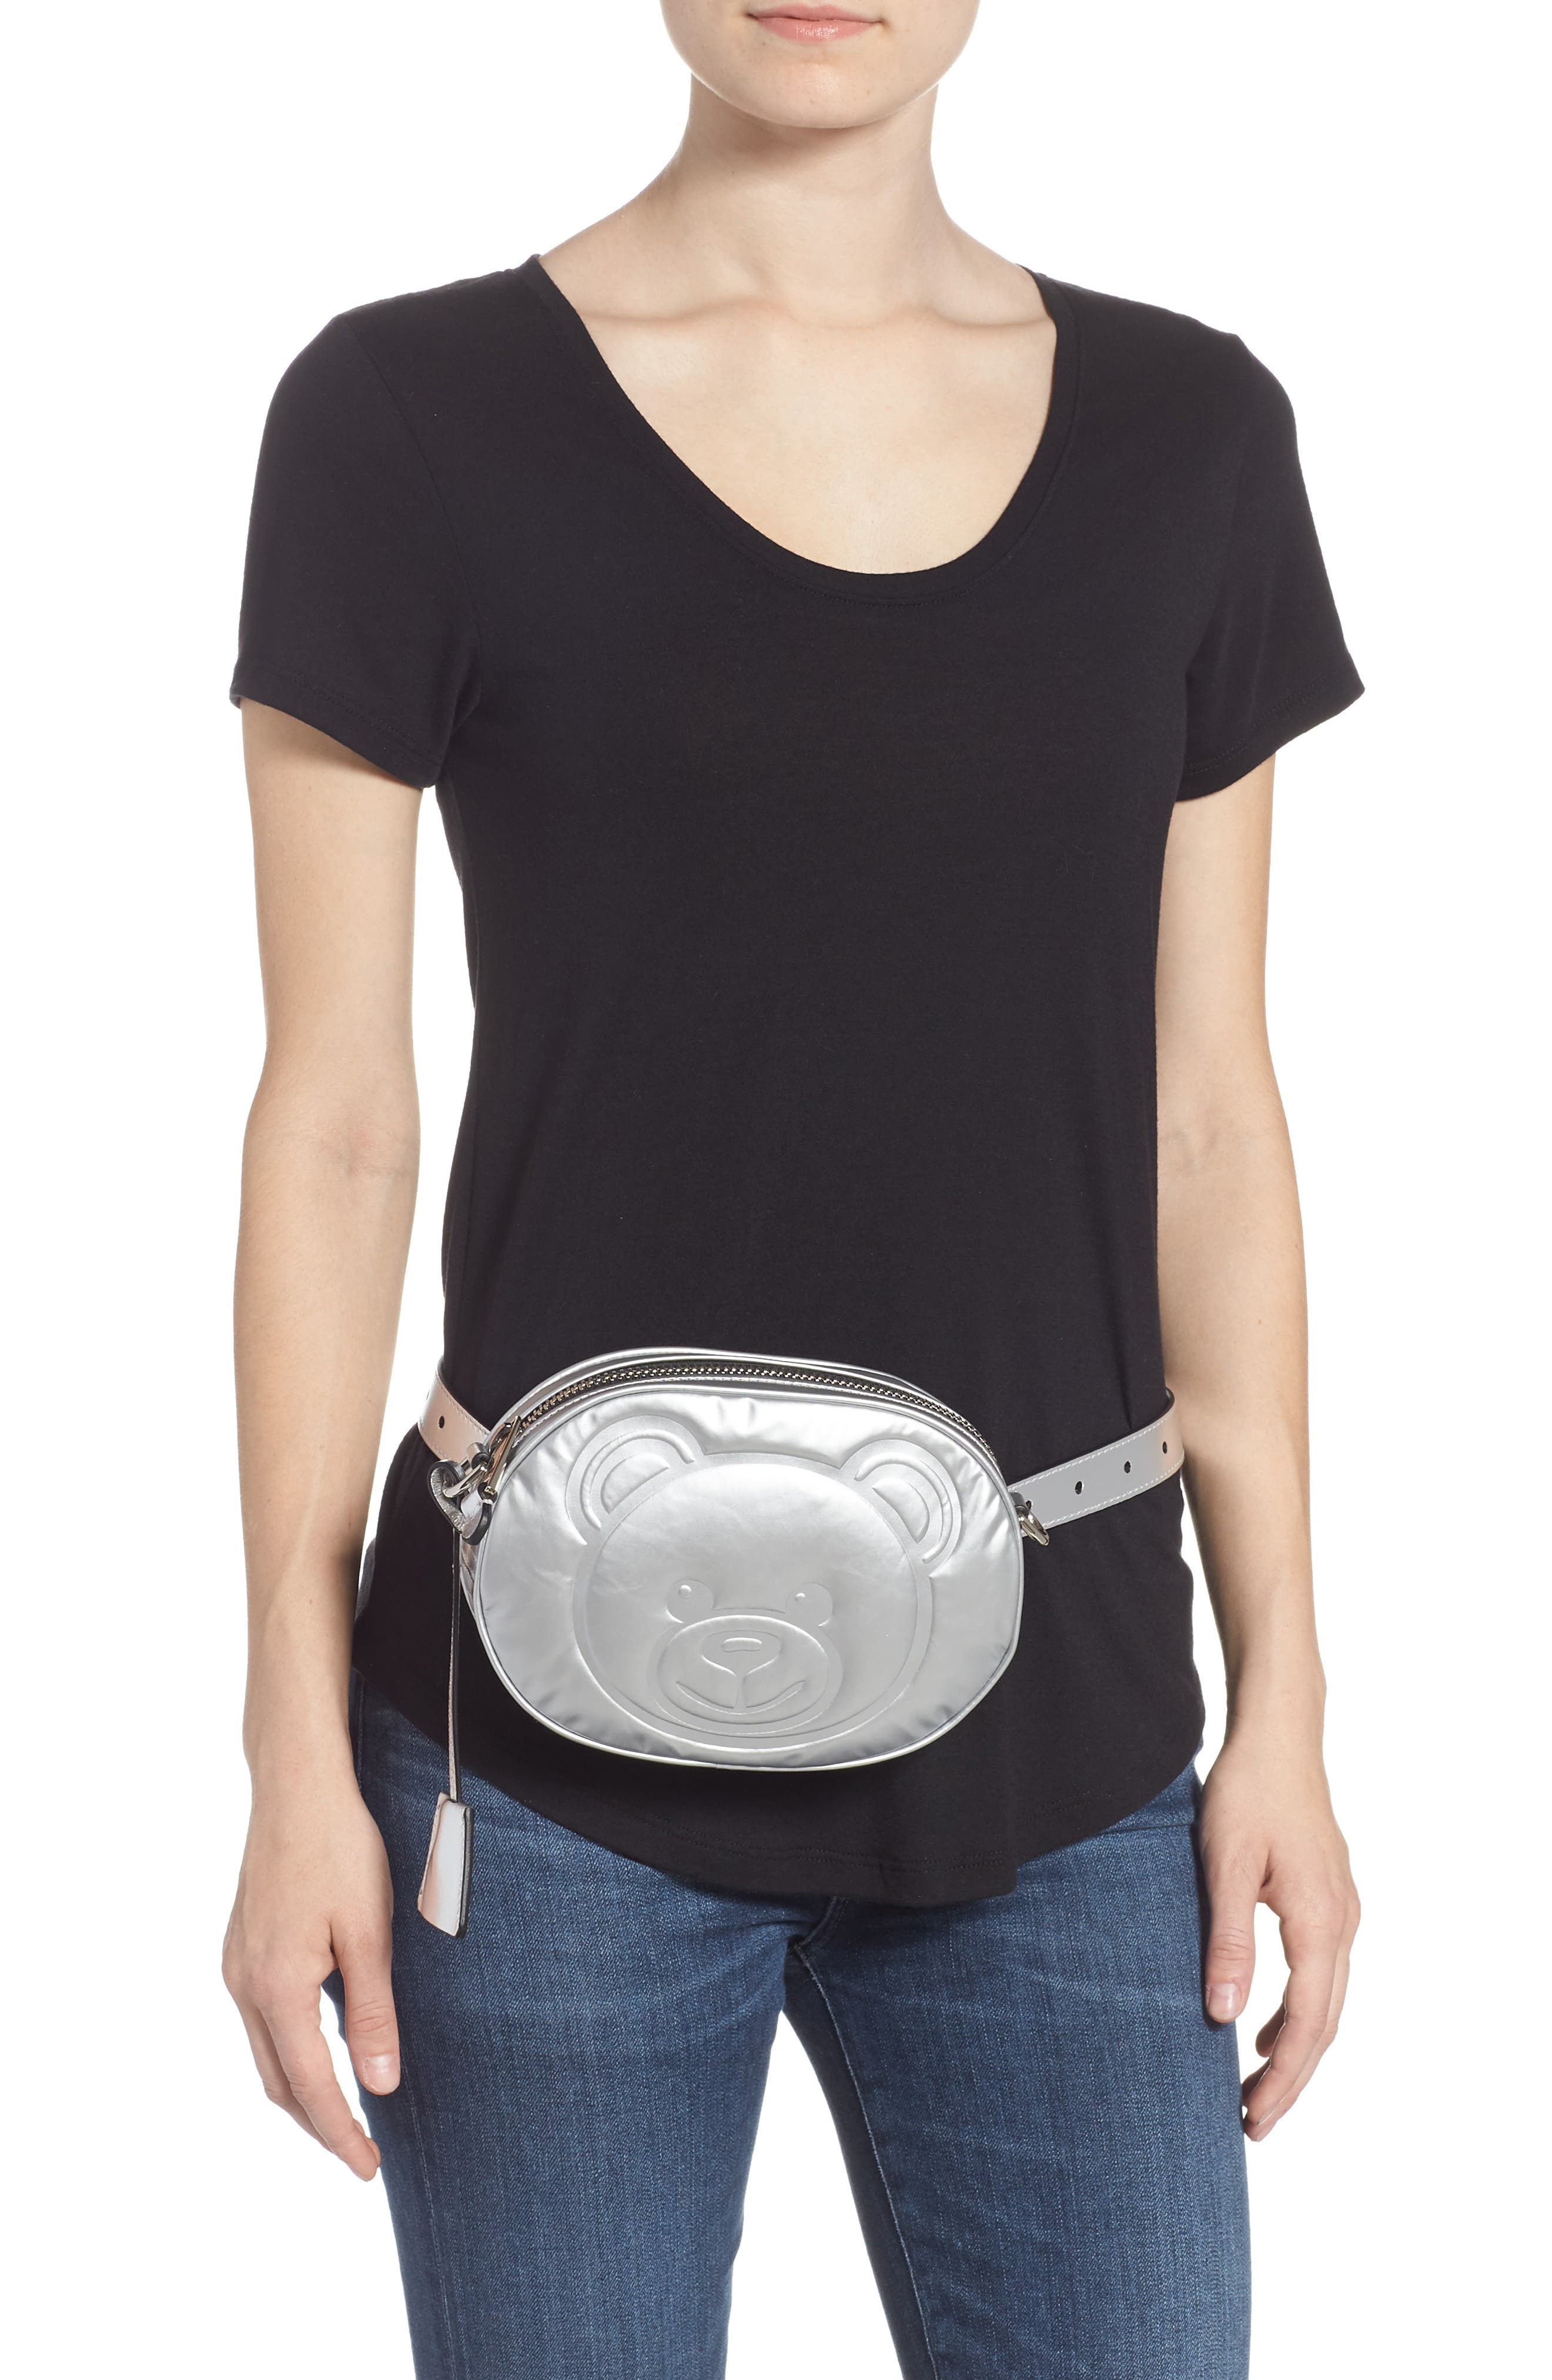 MOSCHINO, Silver Teddy Belt Bag, Alternate thumbnail 2, color, SILVER